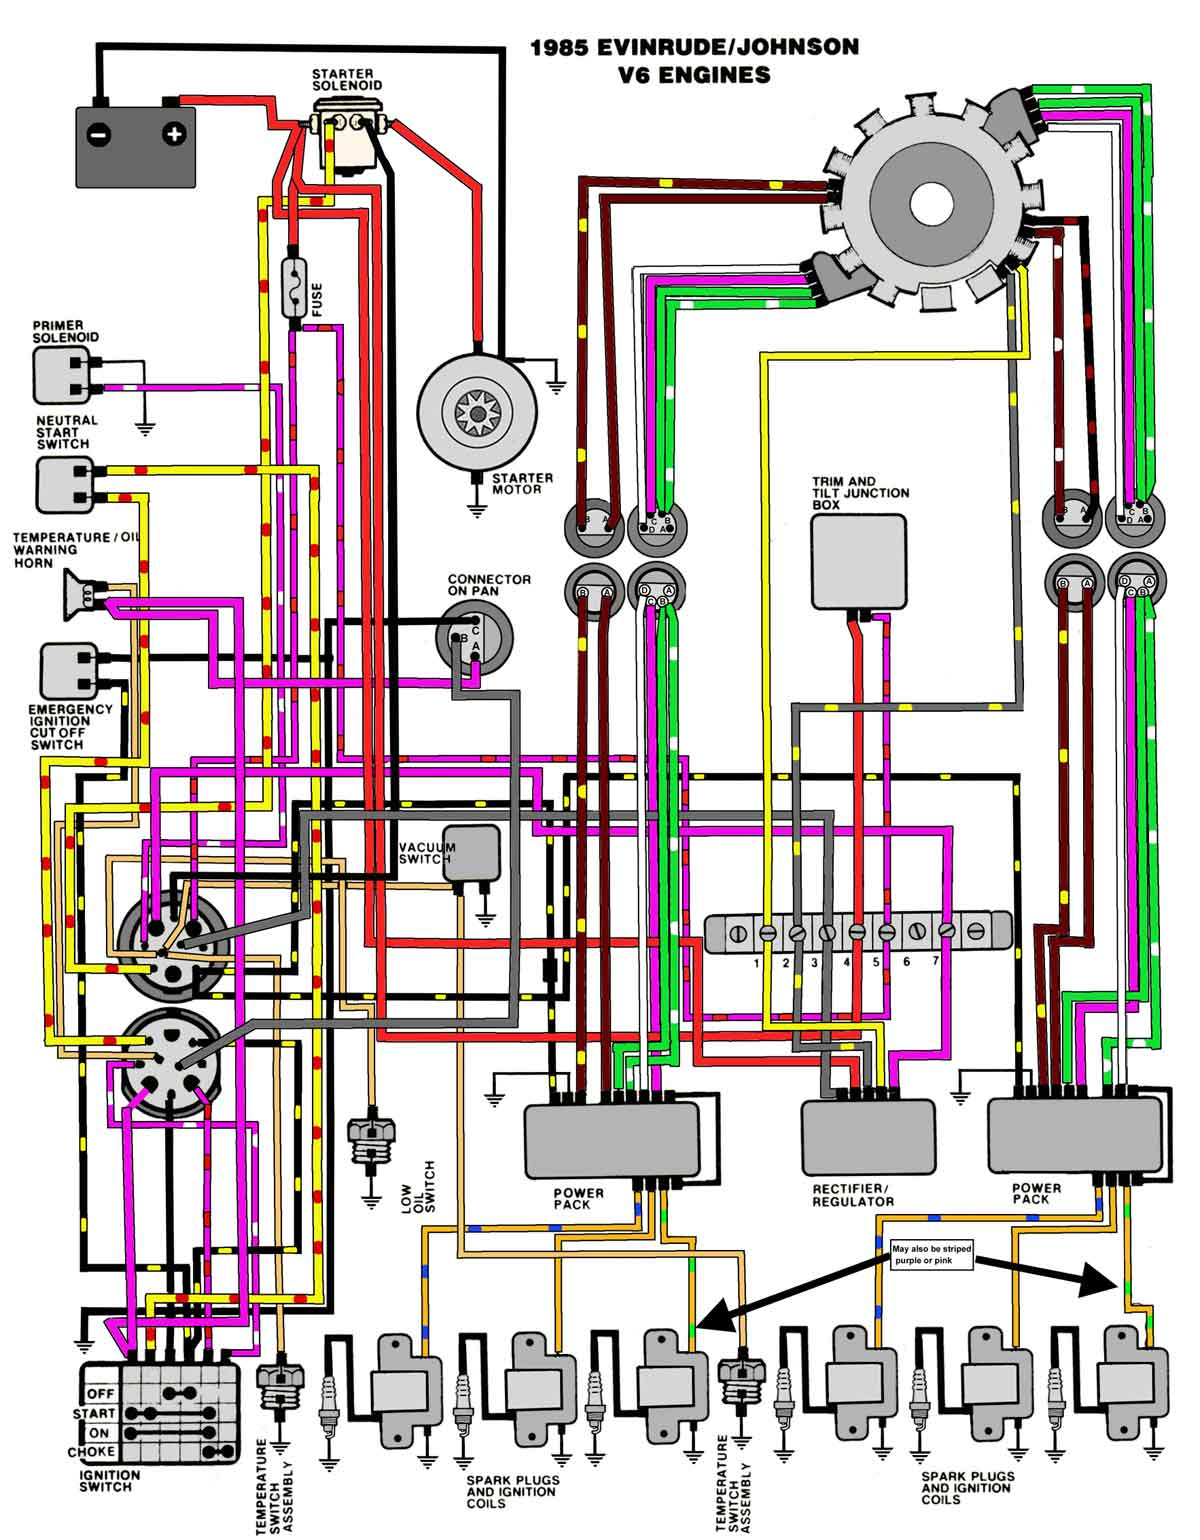 85_V6 mastertech marine evinrude johnson outboard wiring diagrams johnson outboard motor diagram at mifinder.co